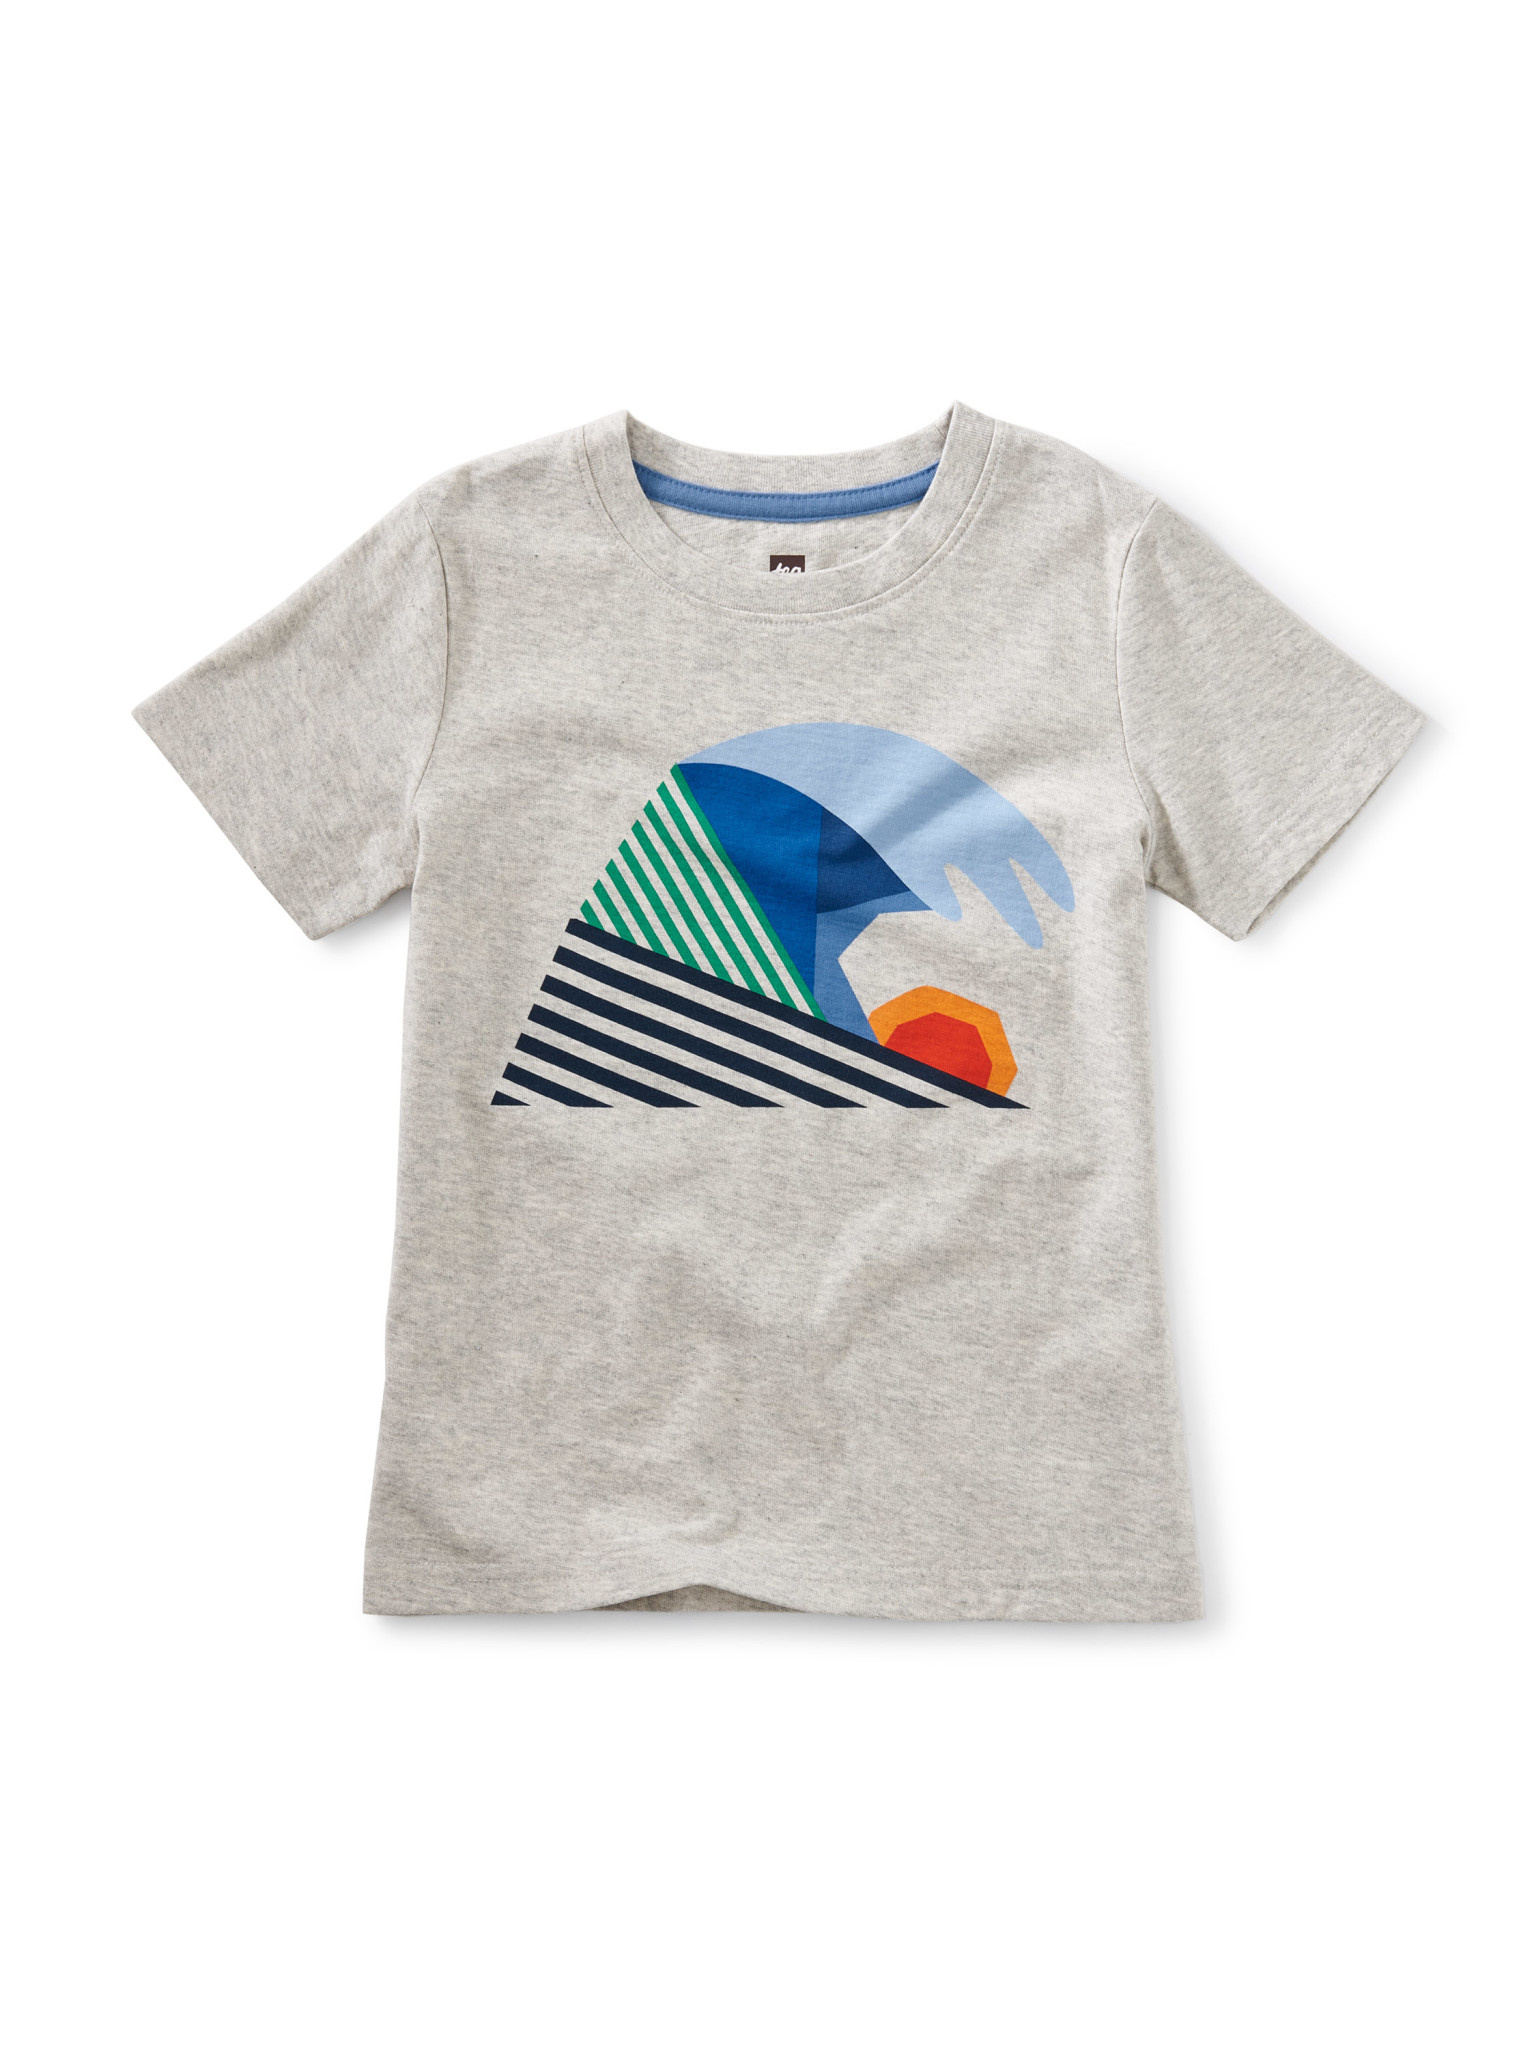 Tea Collection Wave Hello Graphic Tee